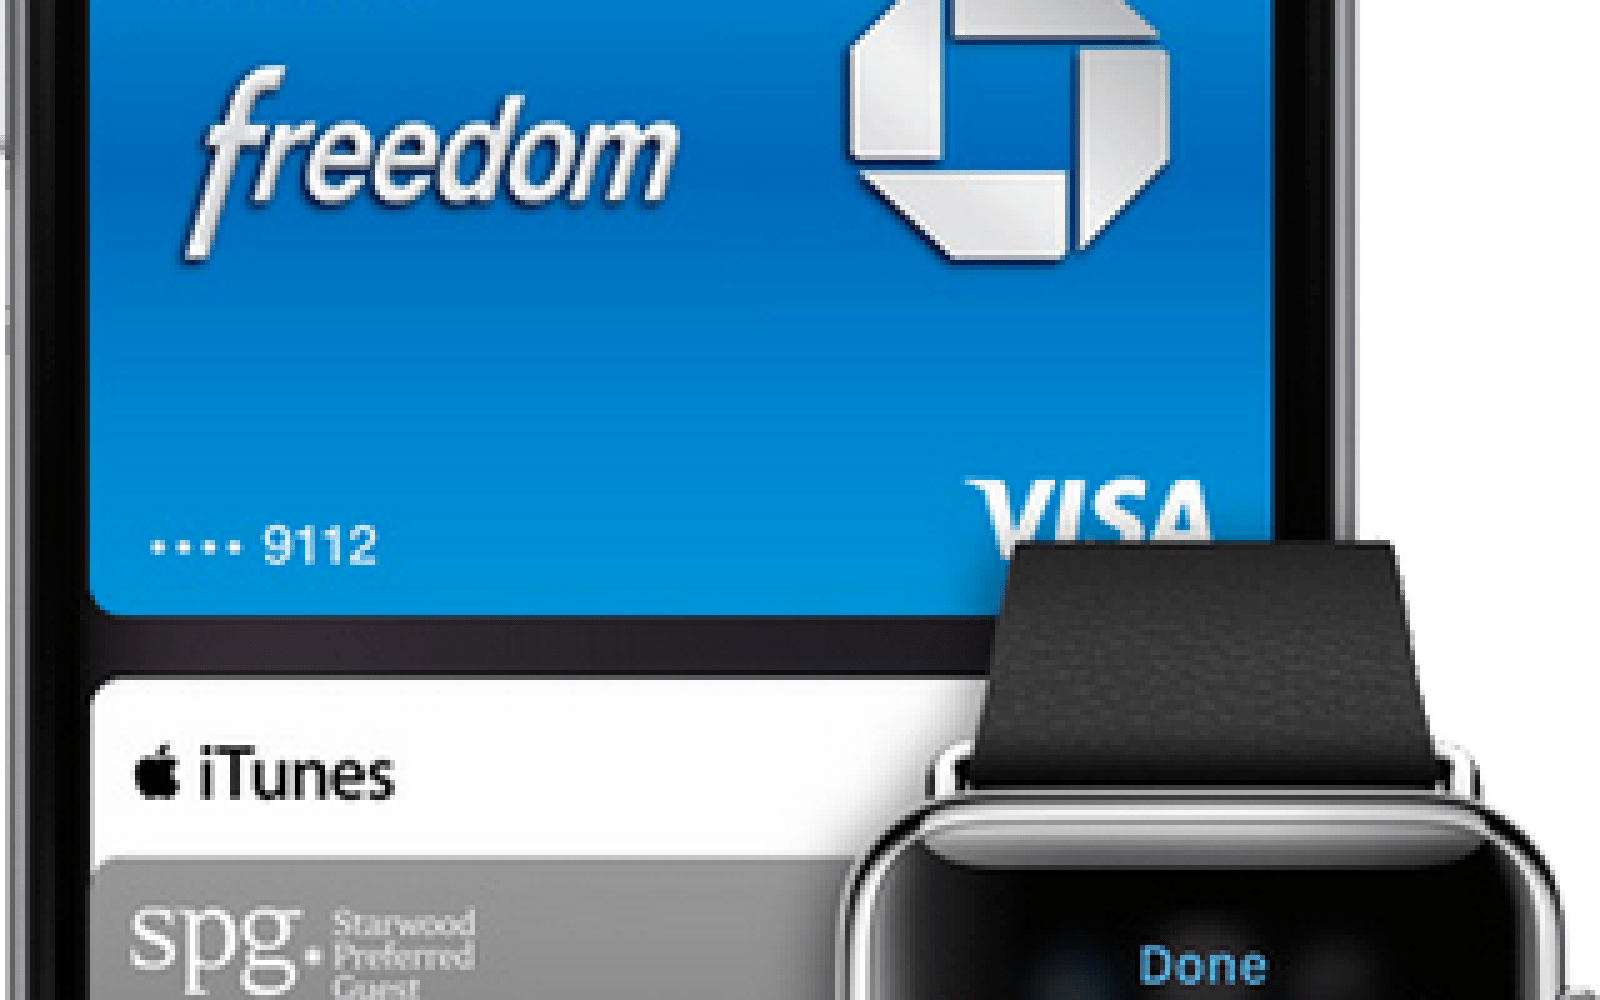 Walmart on why it doesn't accept Apple Pay: 'What matters is that